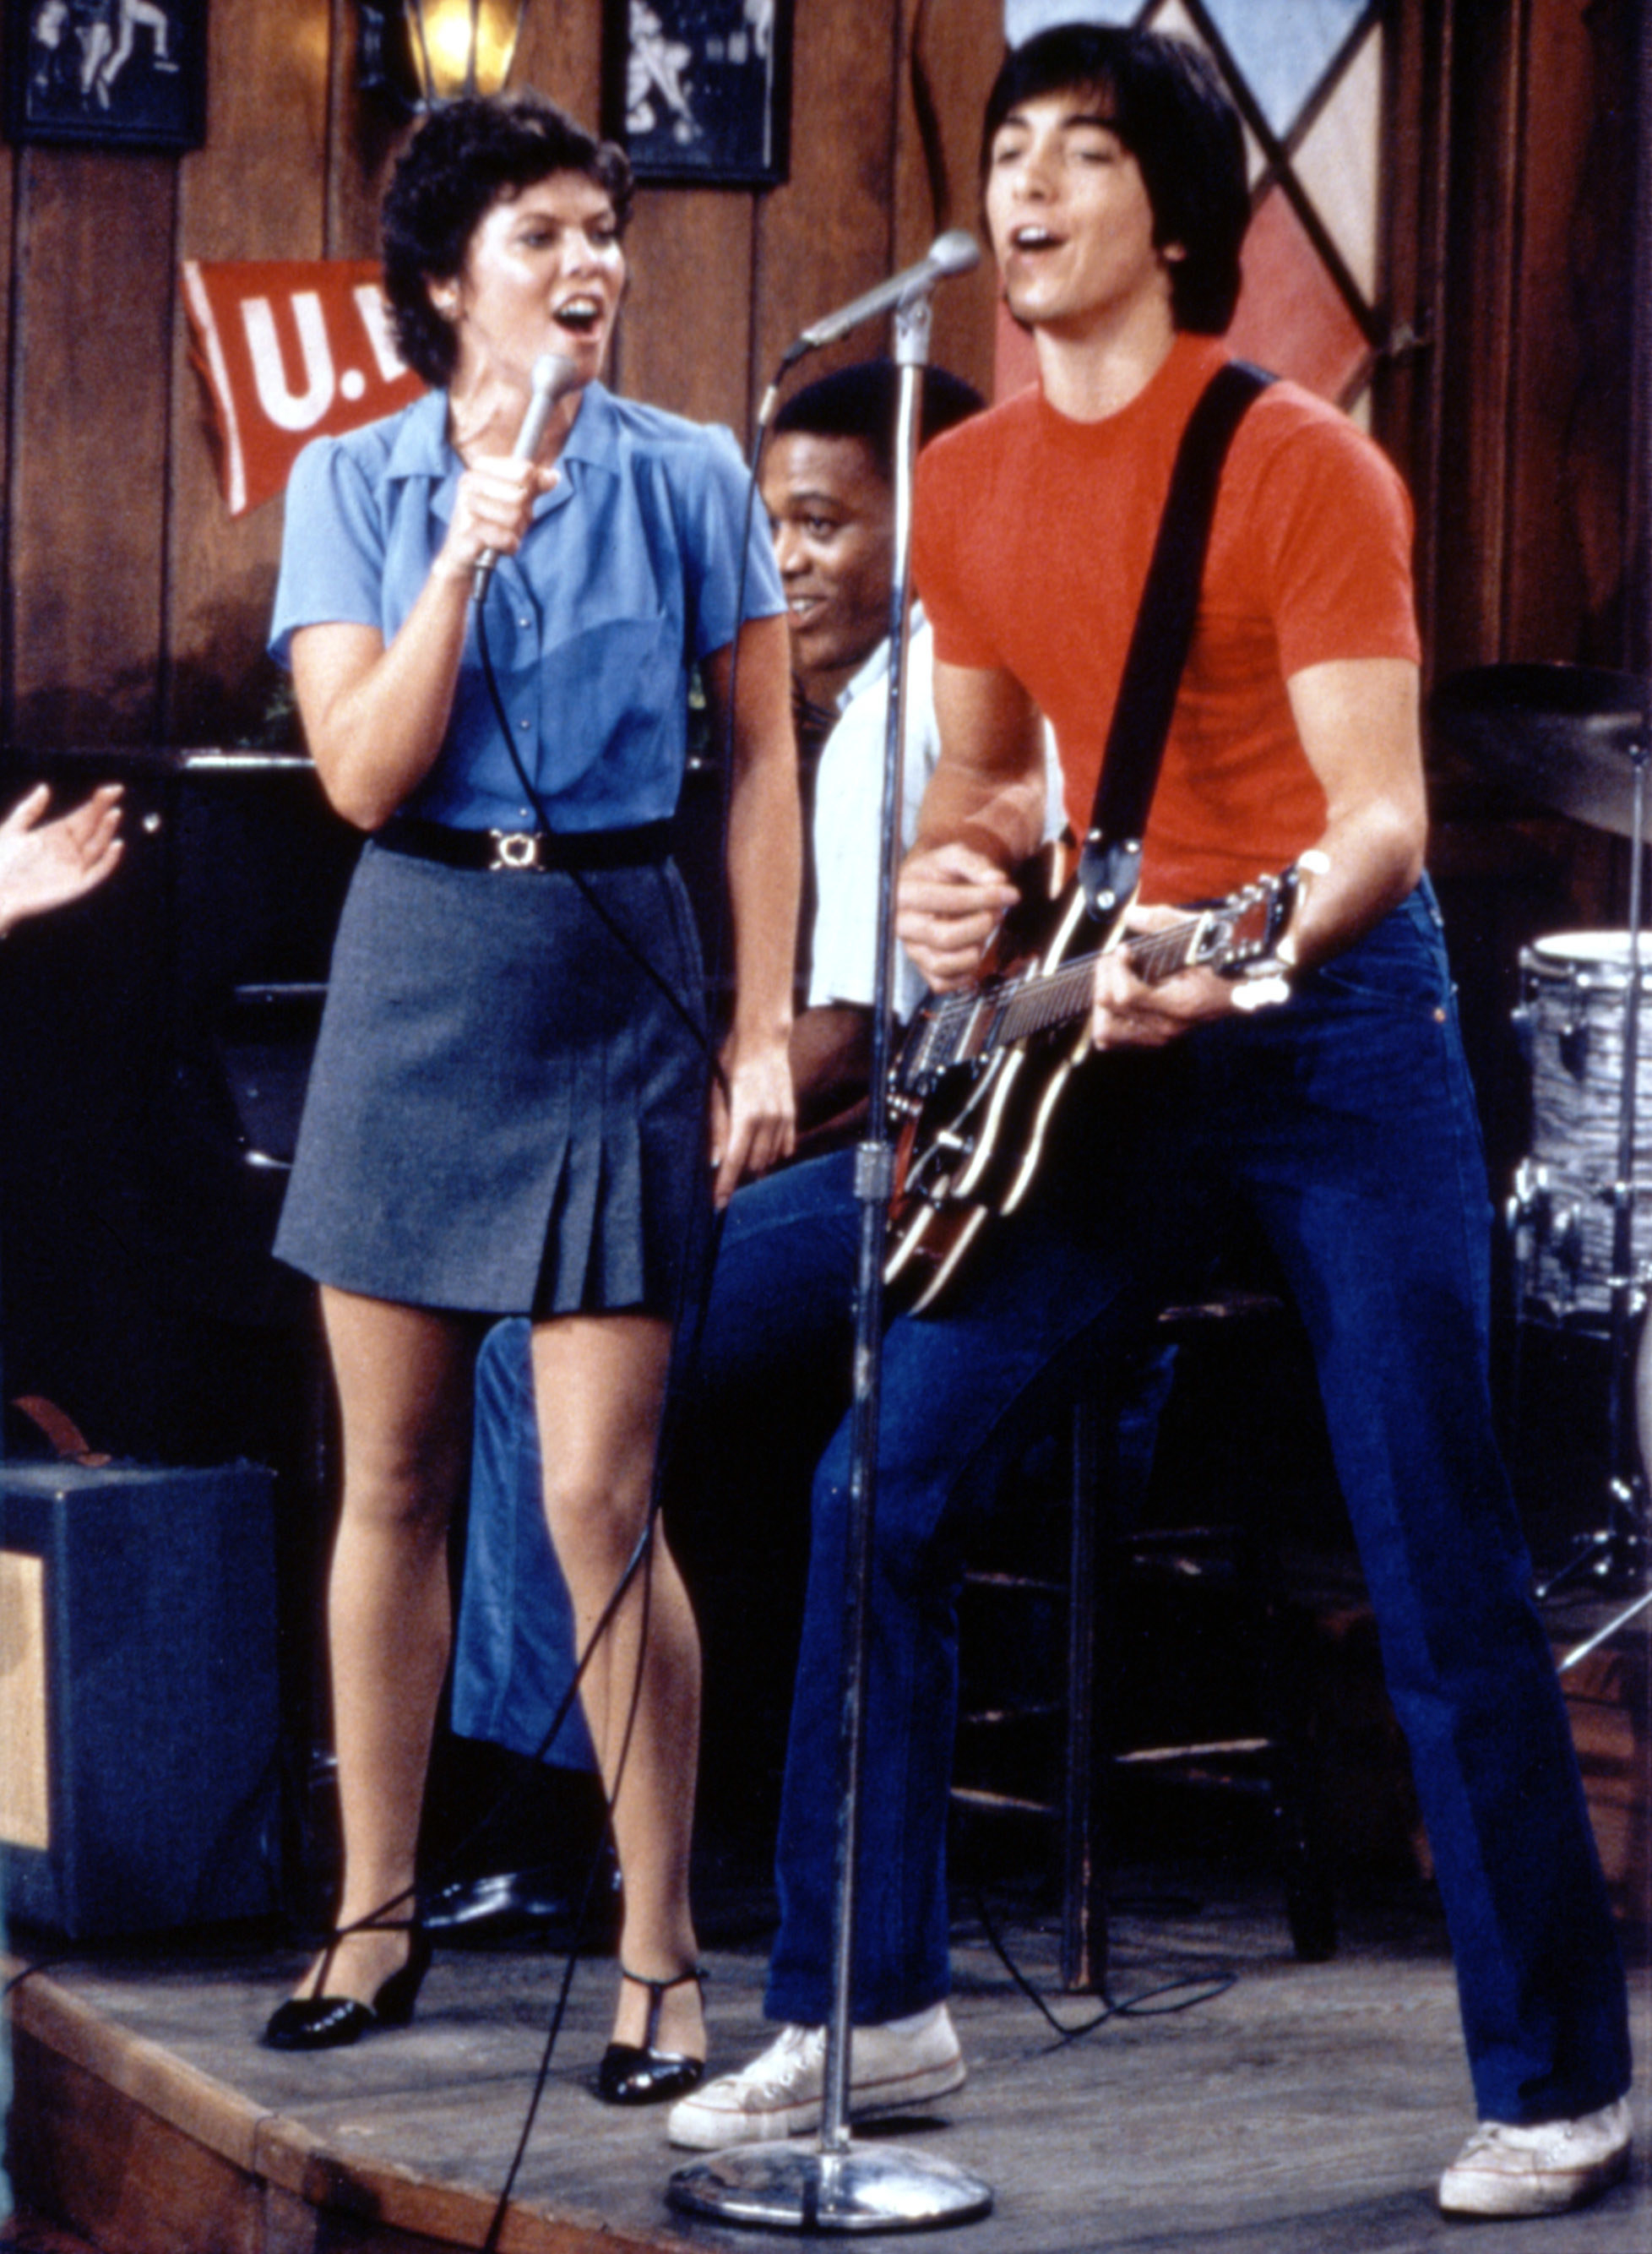 Joanie and Chachi singing